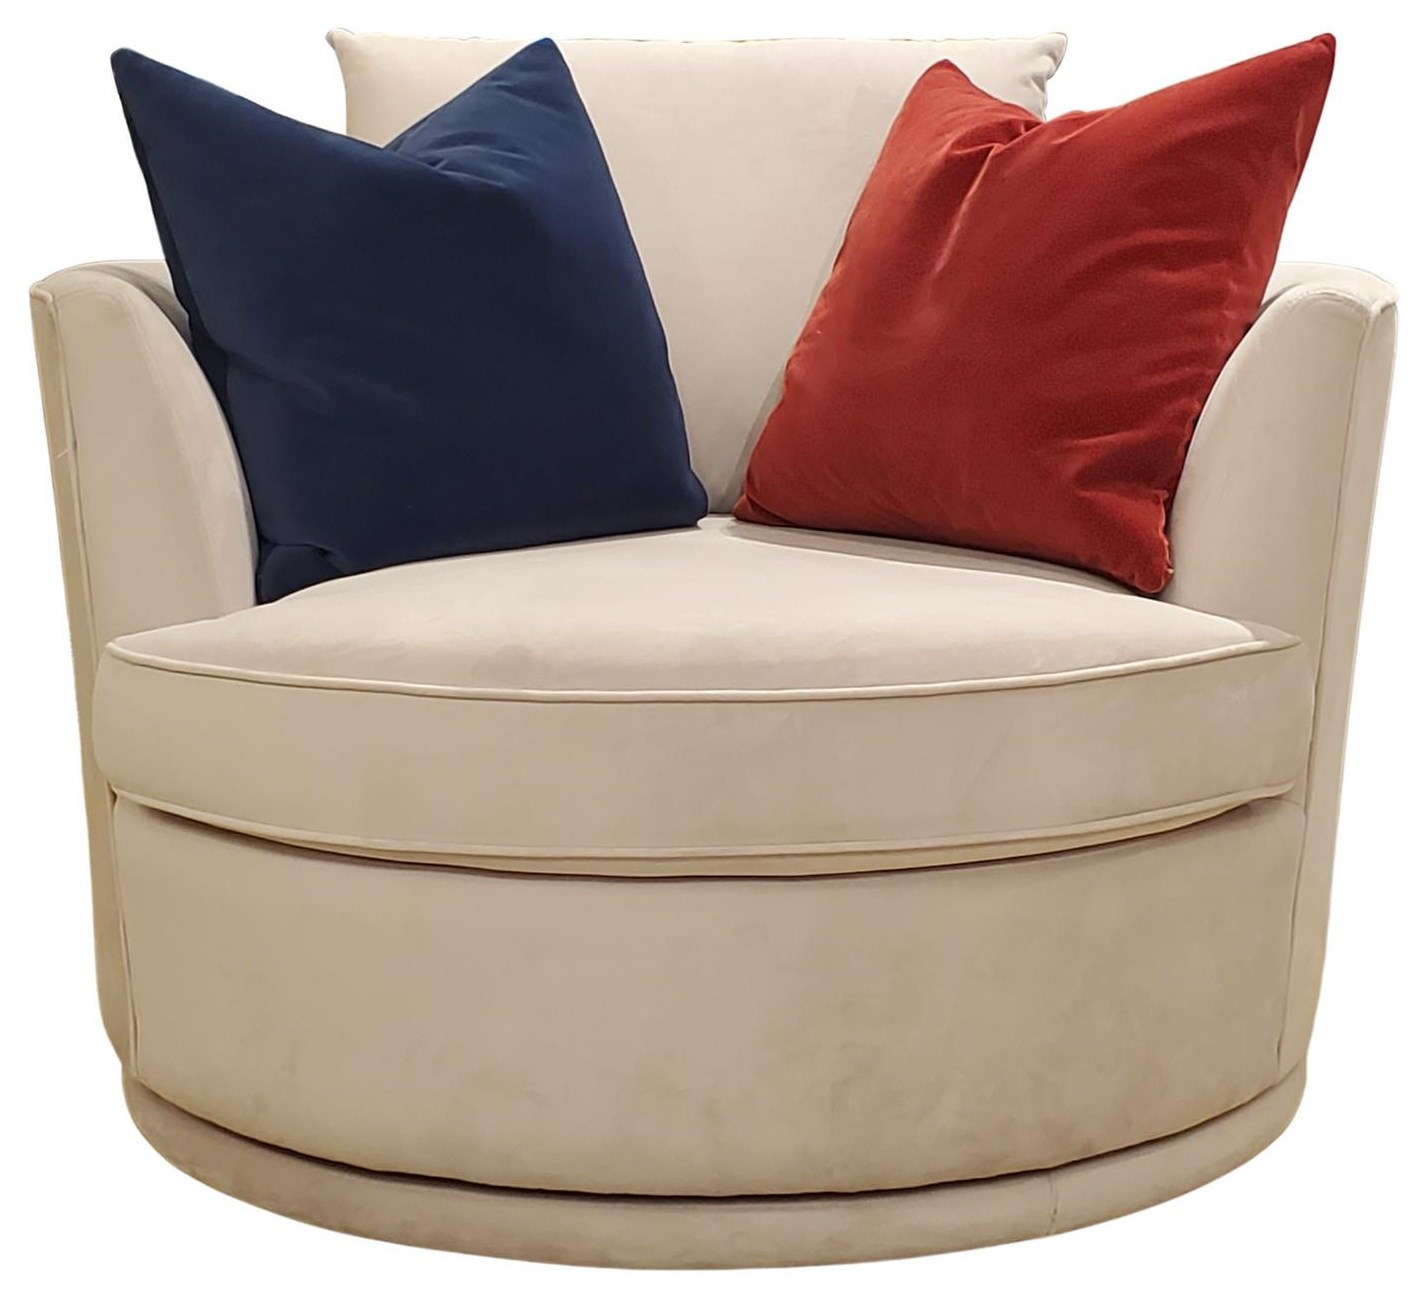 """2992 46"""" Swivel Chair by Decor-Rest at Upper Room Home Furnishings"""